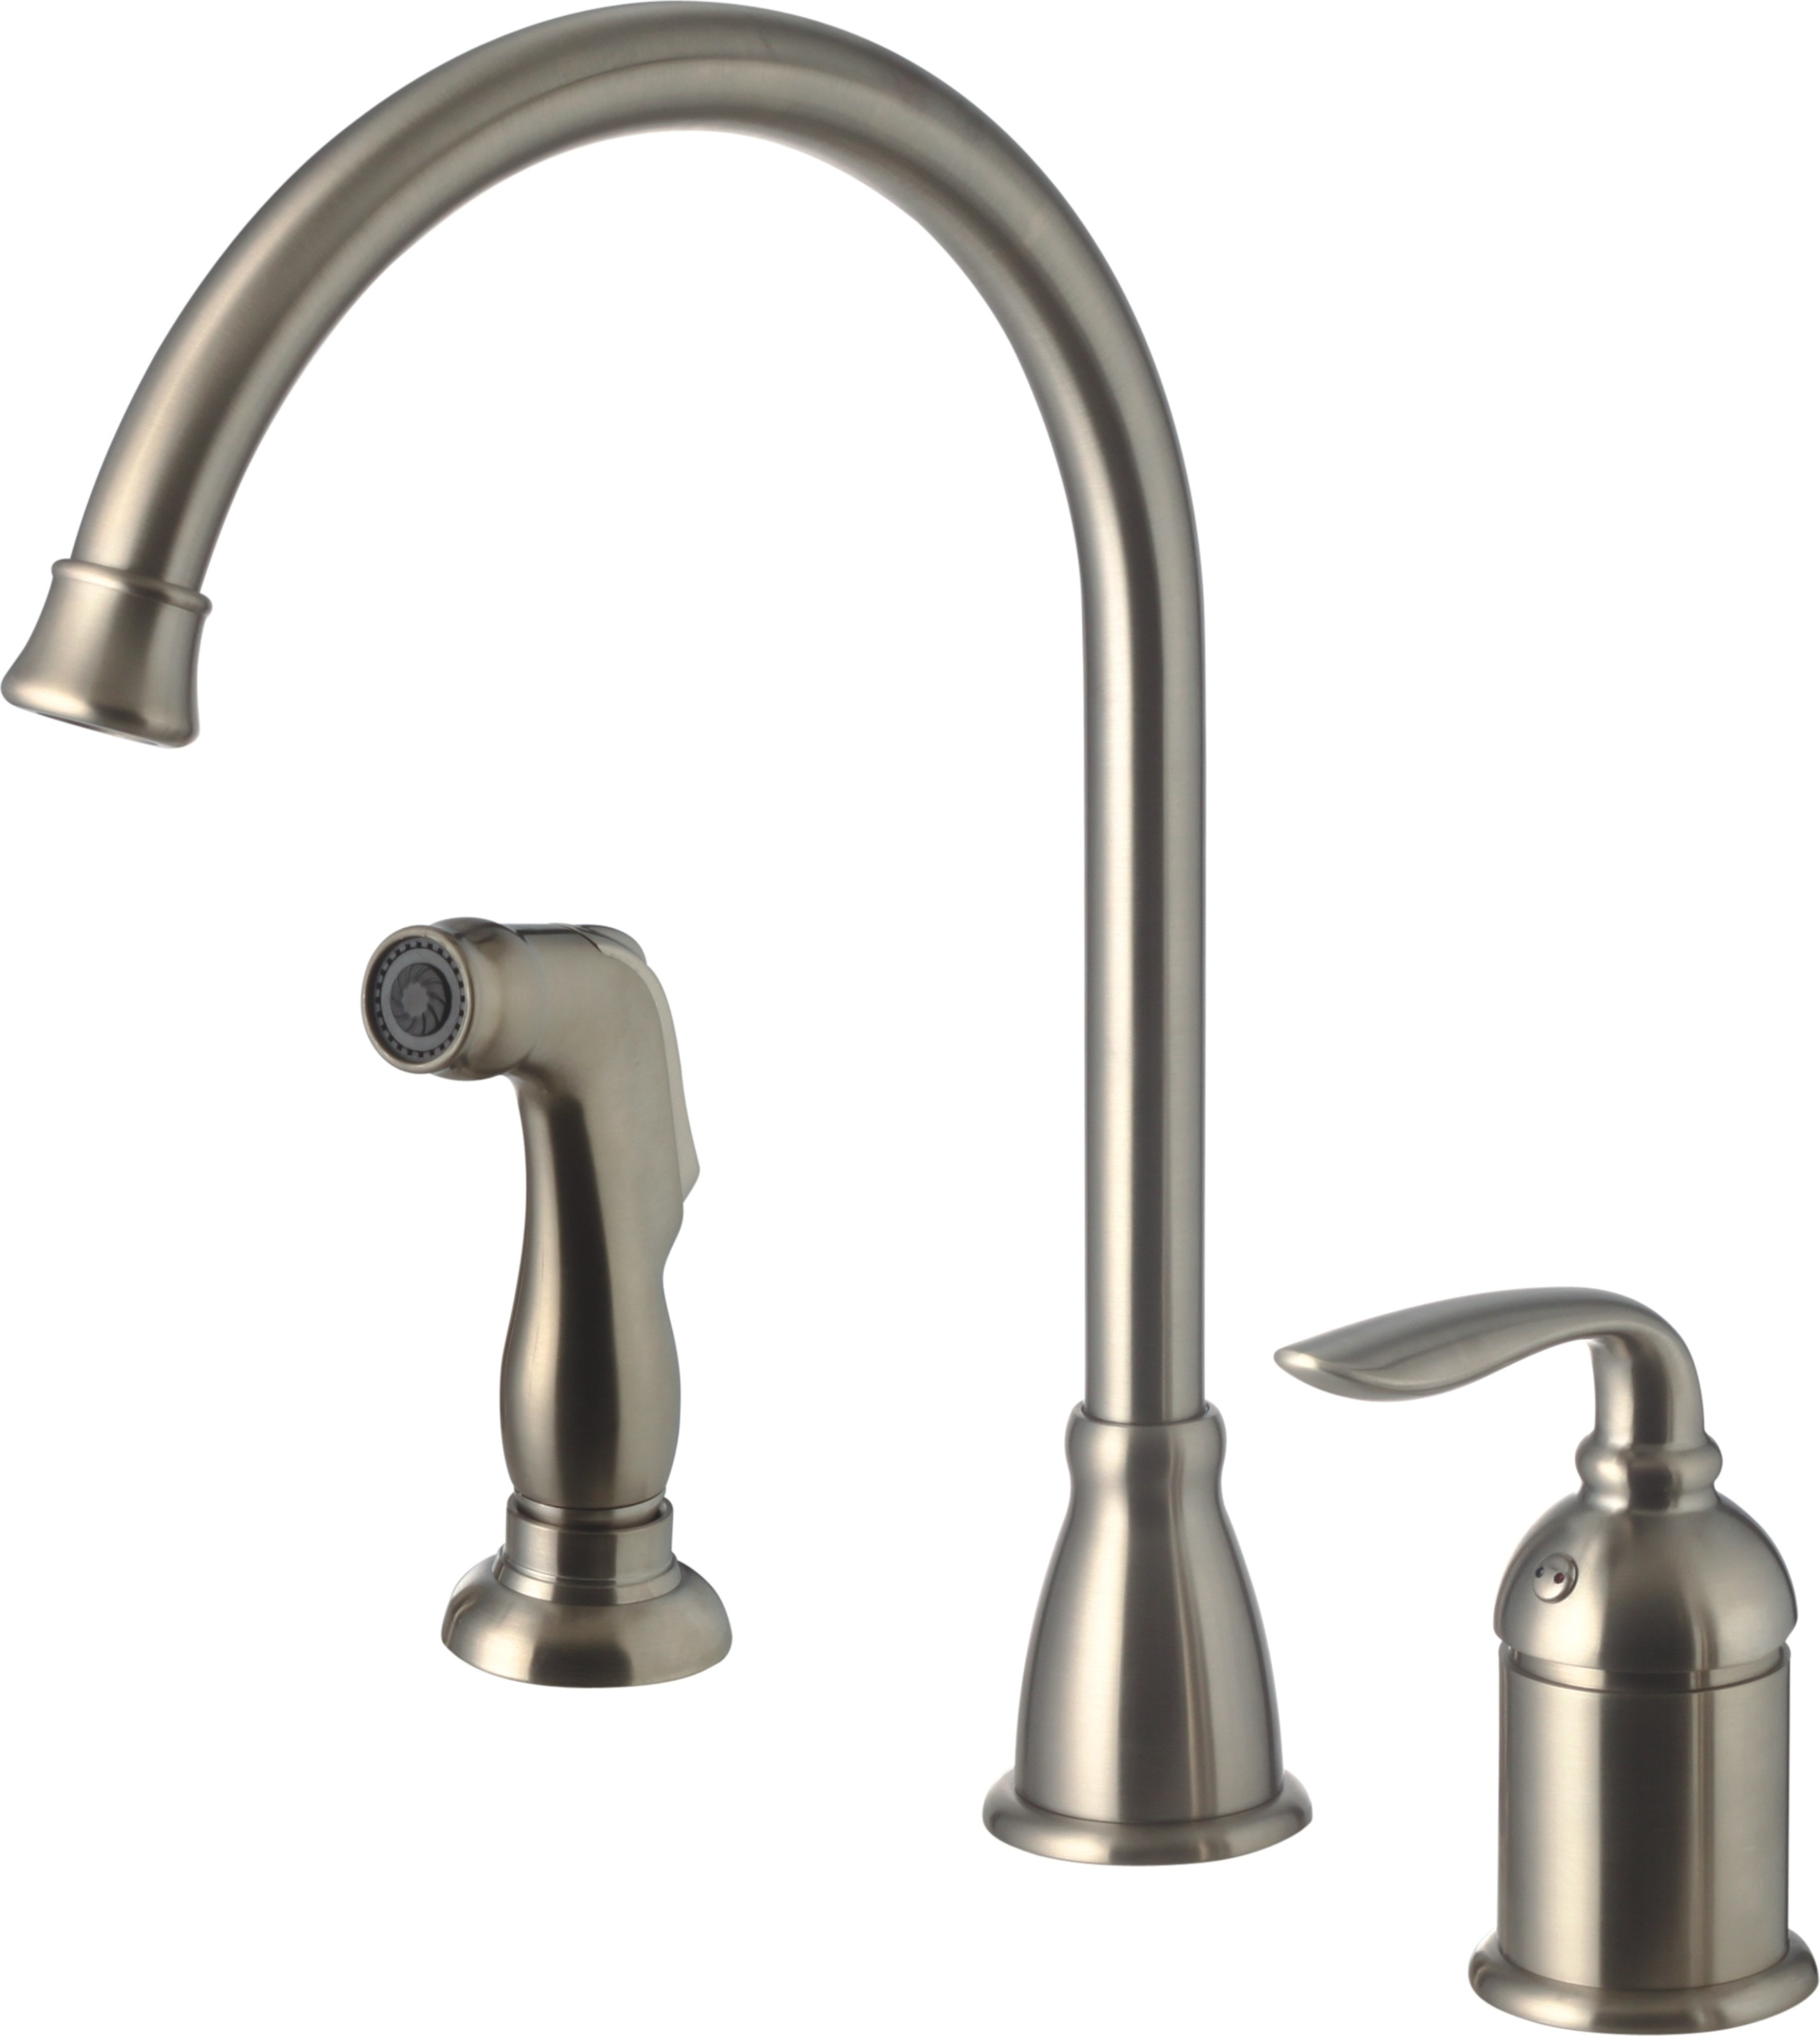 brushed nickel kitchen faucet with sprayer bronze faucets single handle side spray